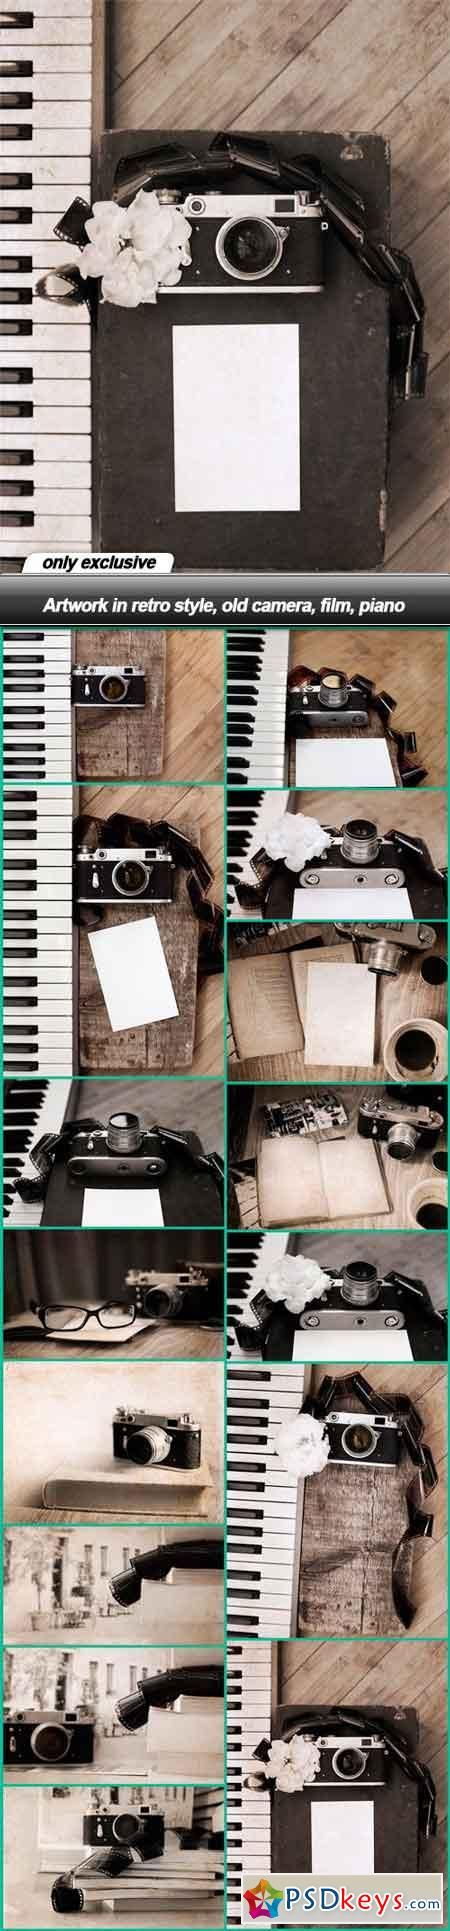 Artwork in retro style, old camera, film, piano - 15 UHQ JPEG